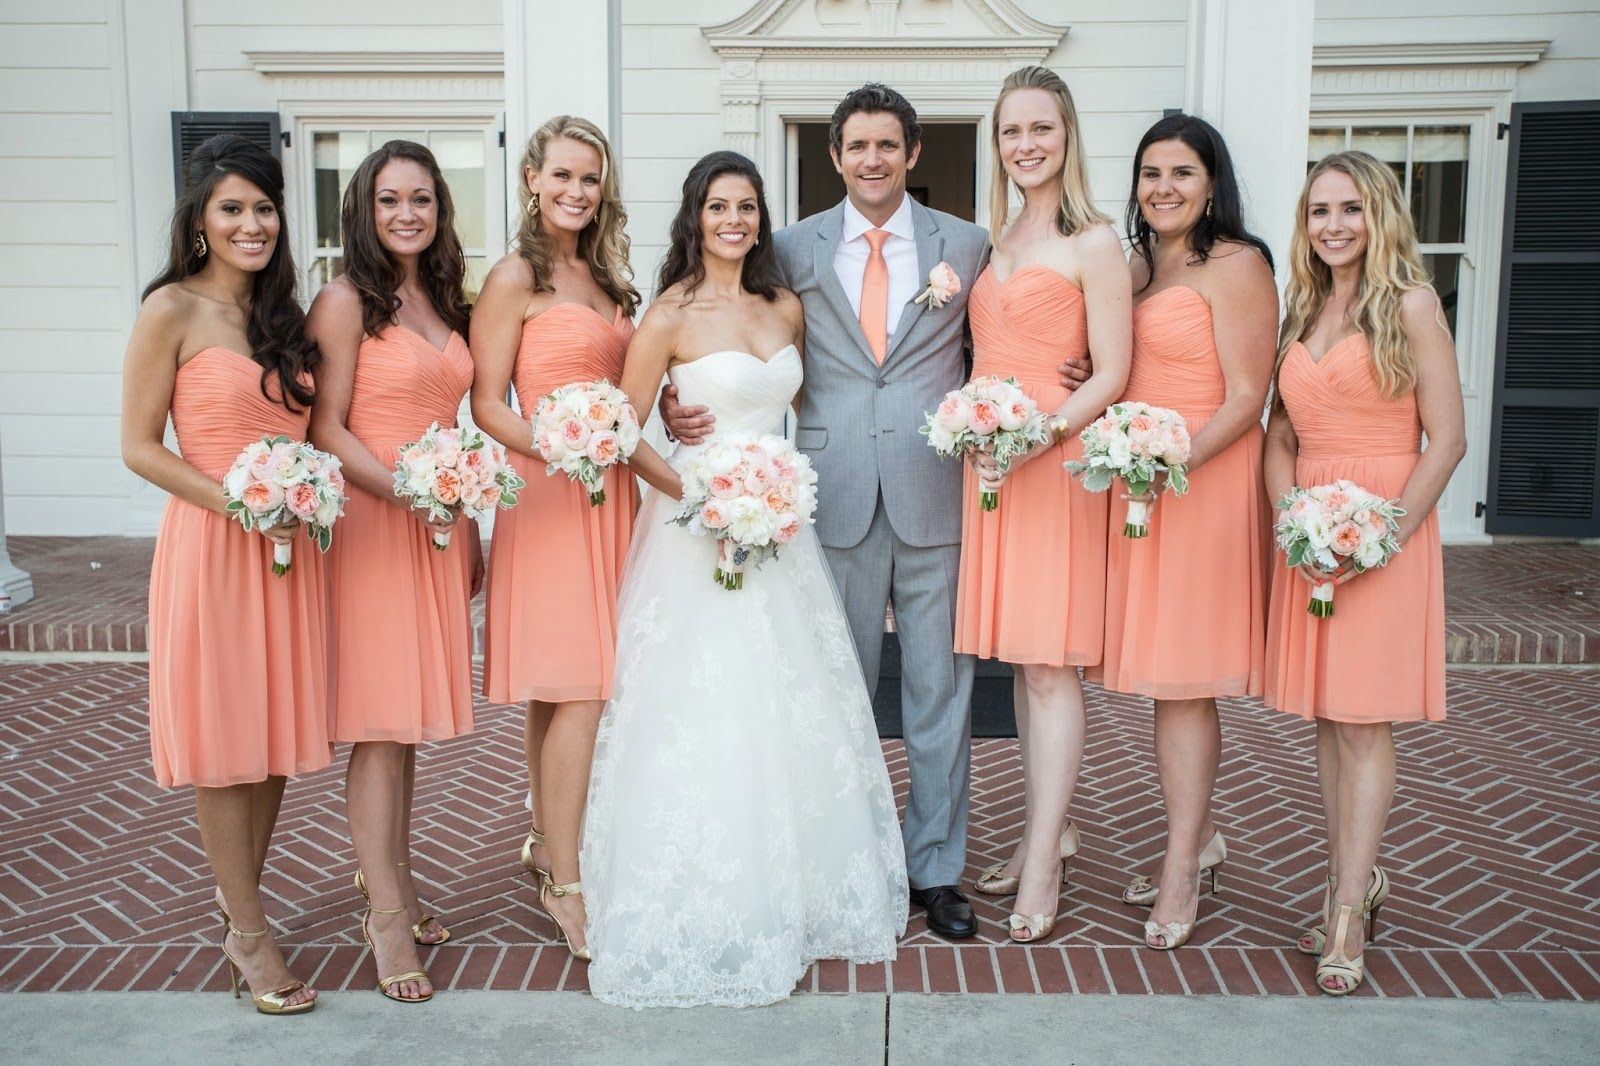 Coral peach grey wedding colors nuptials pinterest gray help me with my wedding for silver or gray color scheme gray wedding with peach coral bridesmaid dresses ideas ombrellifo Gallery